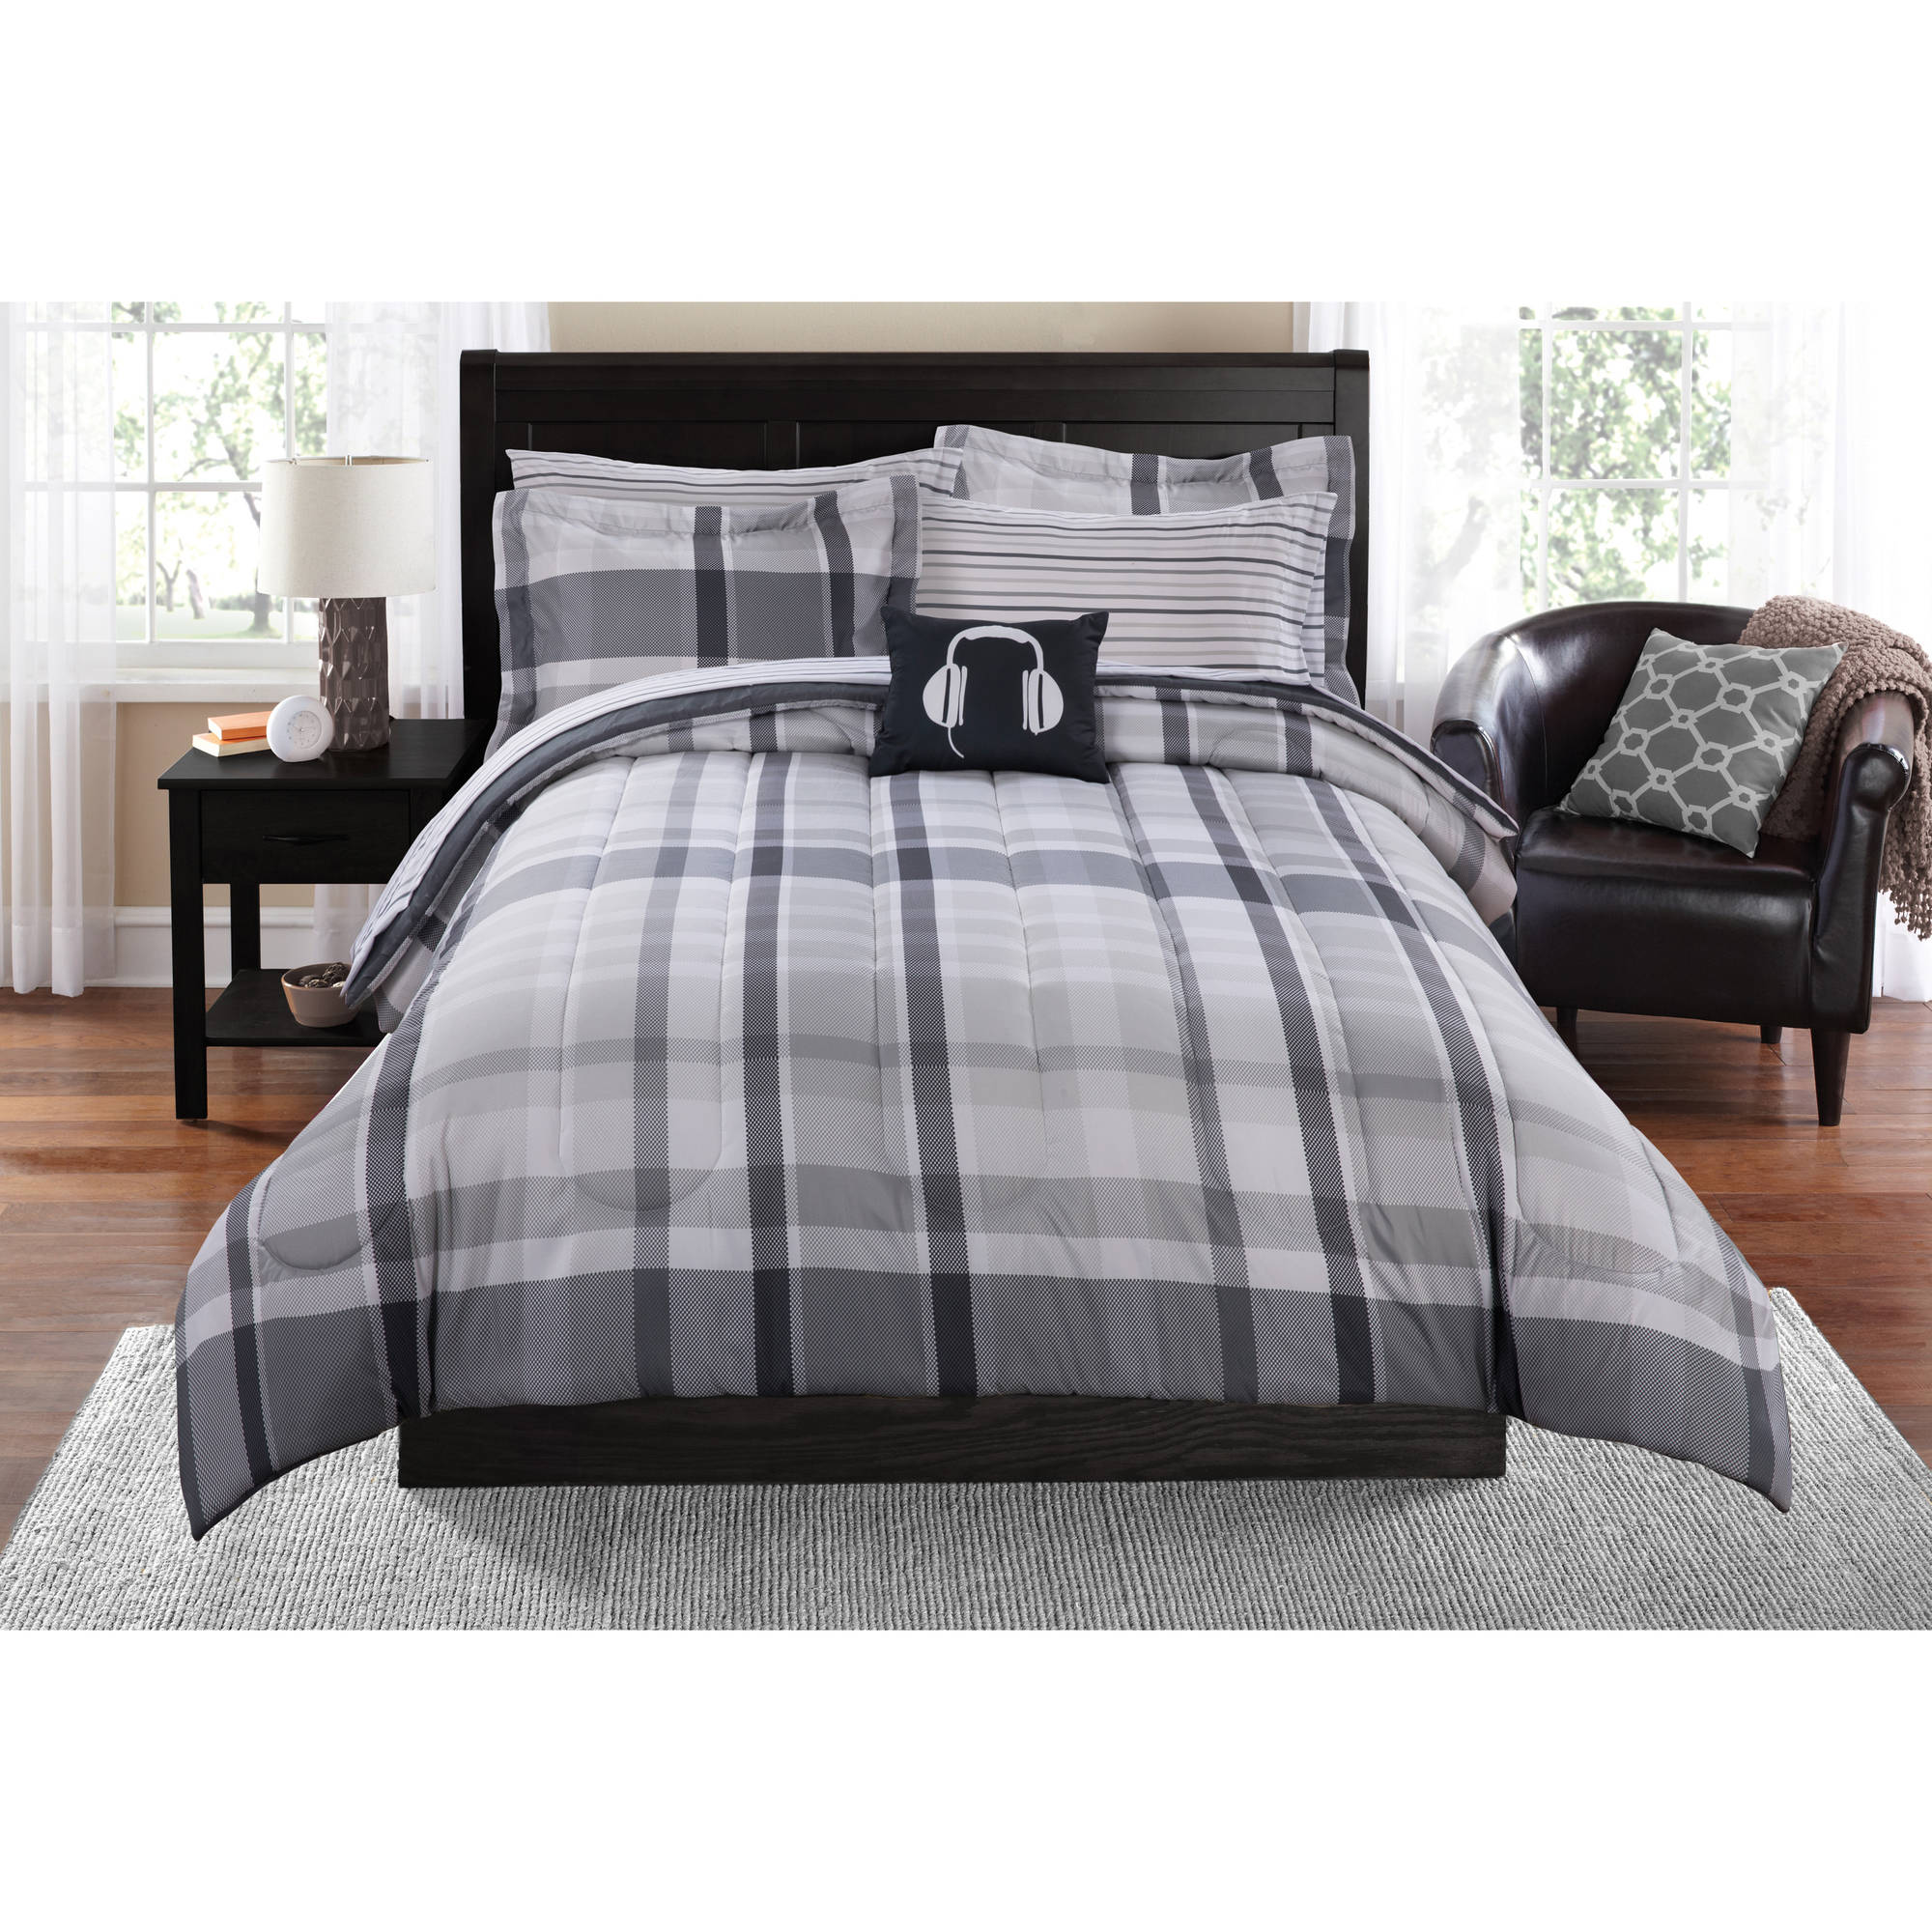 Mainstays Plaid Bed-In-A-Bag Bedding Set